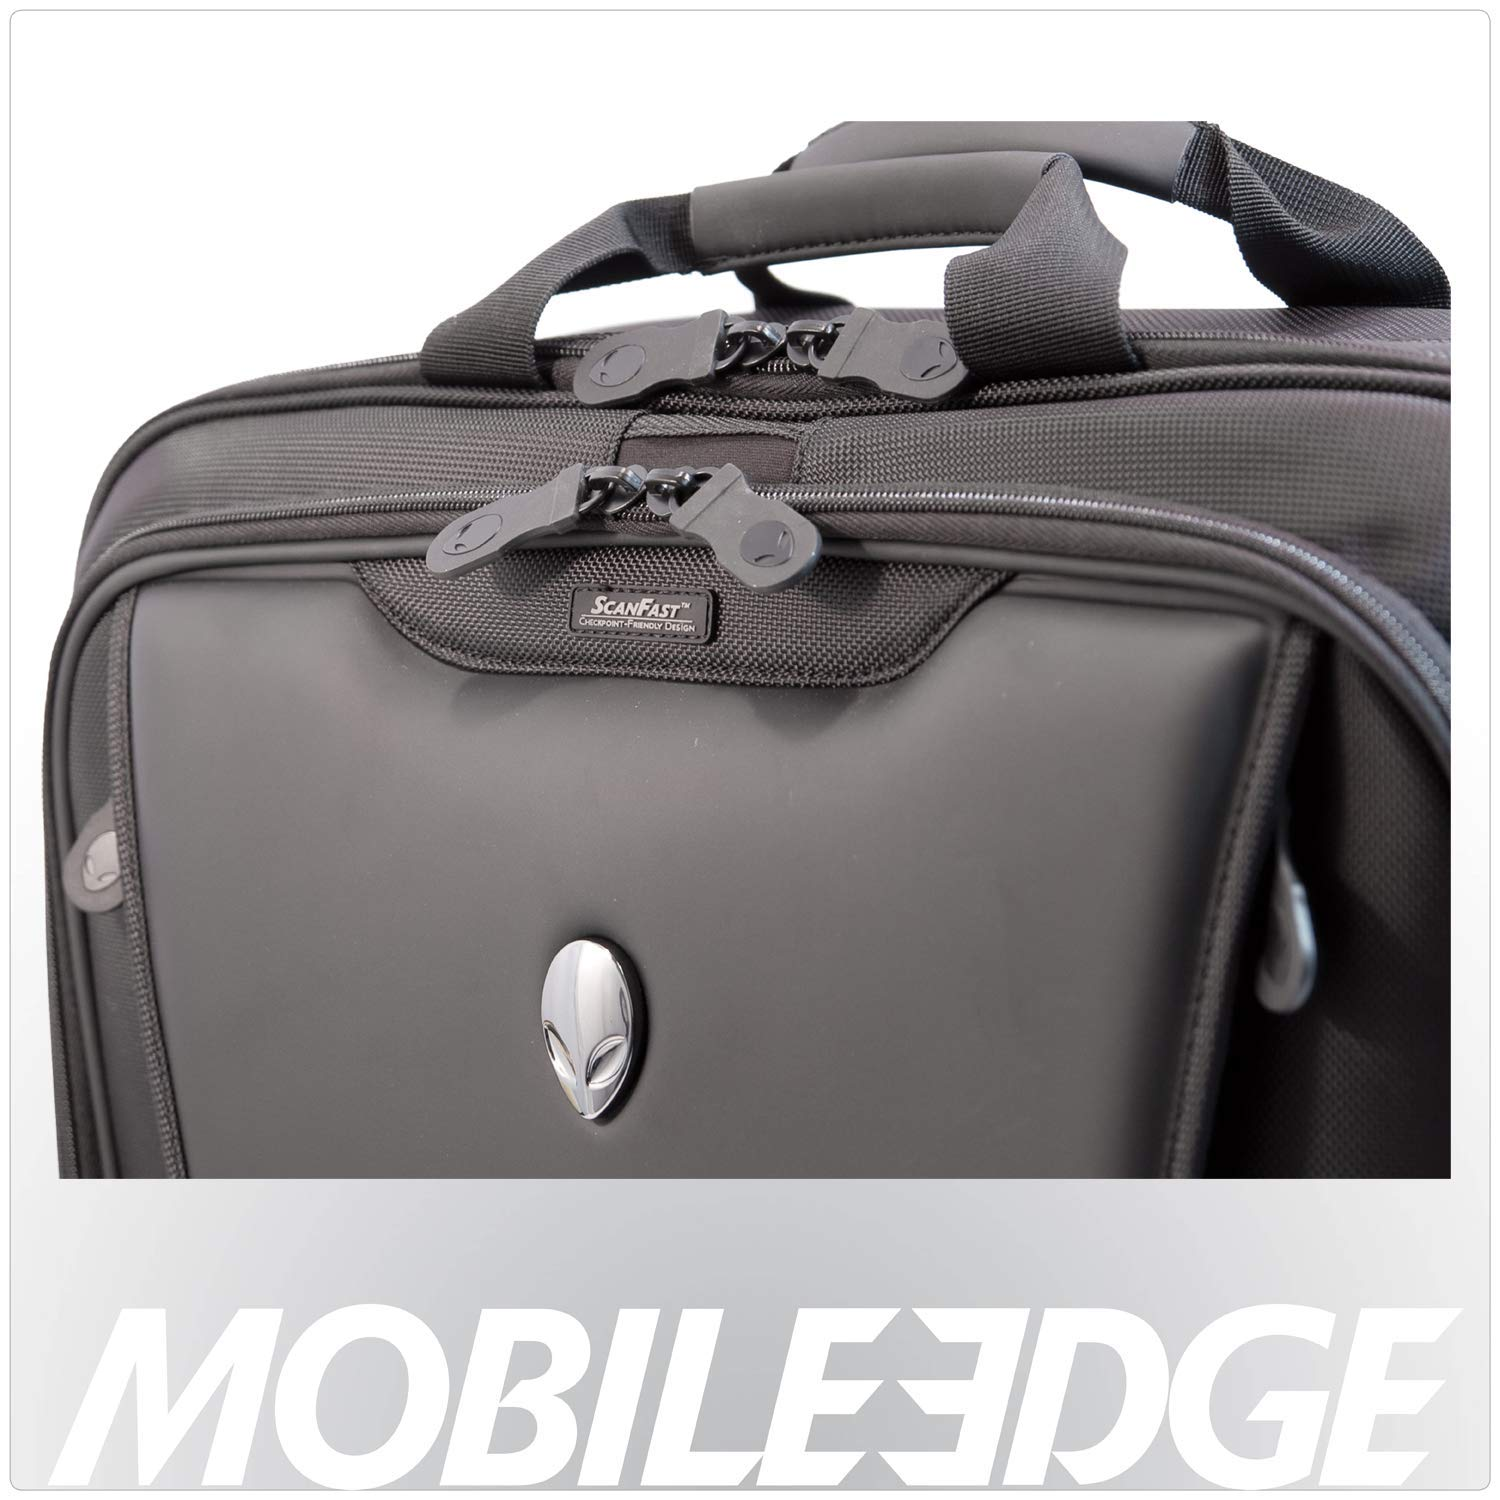 0c46a4de293c Mobile Edge Alienware Orion ScanFast TSA Checkpoint Friendly 17.3 Inch  Laptop Messenger Bag, Large Capacity, Black ME-AWMC2.0